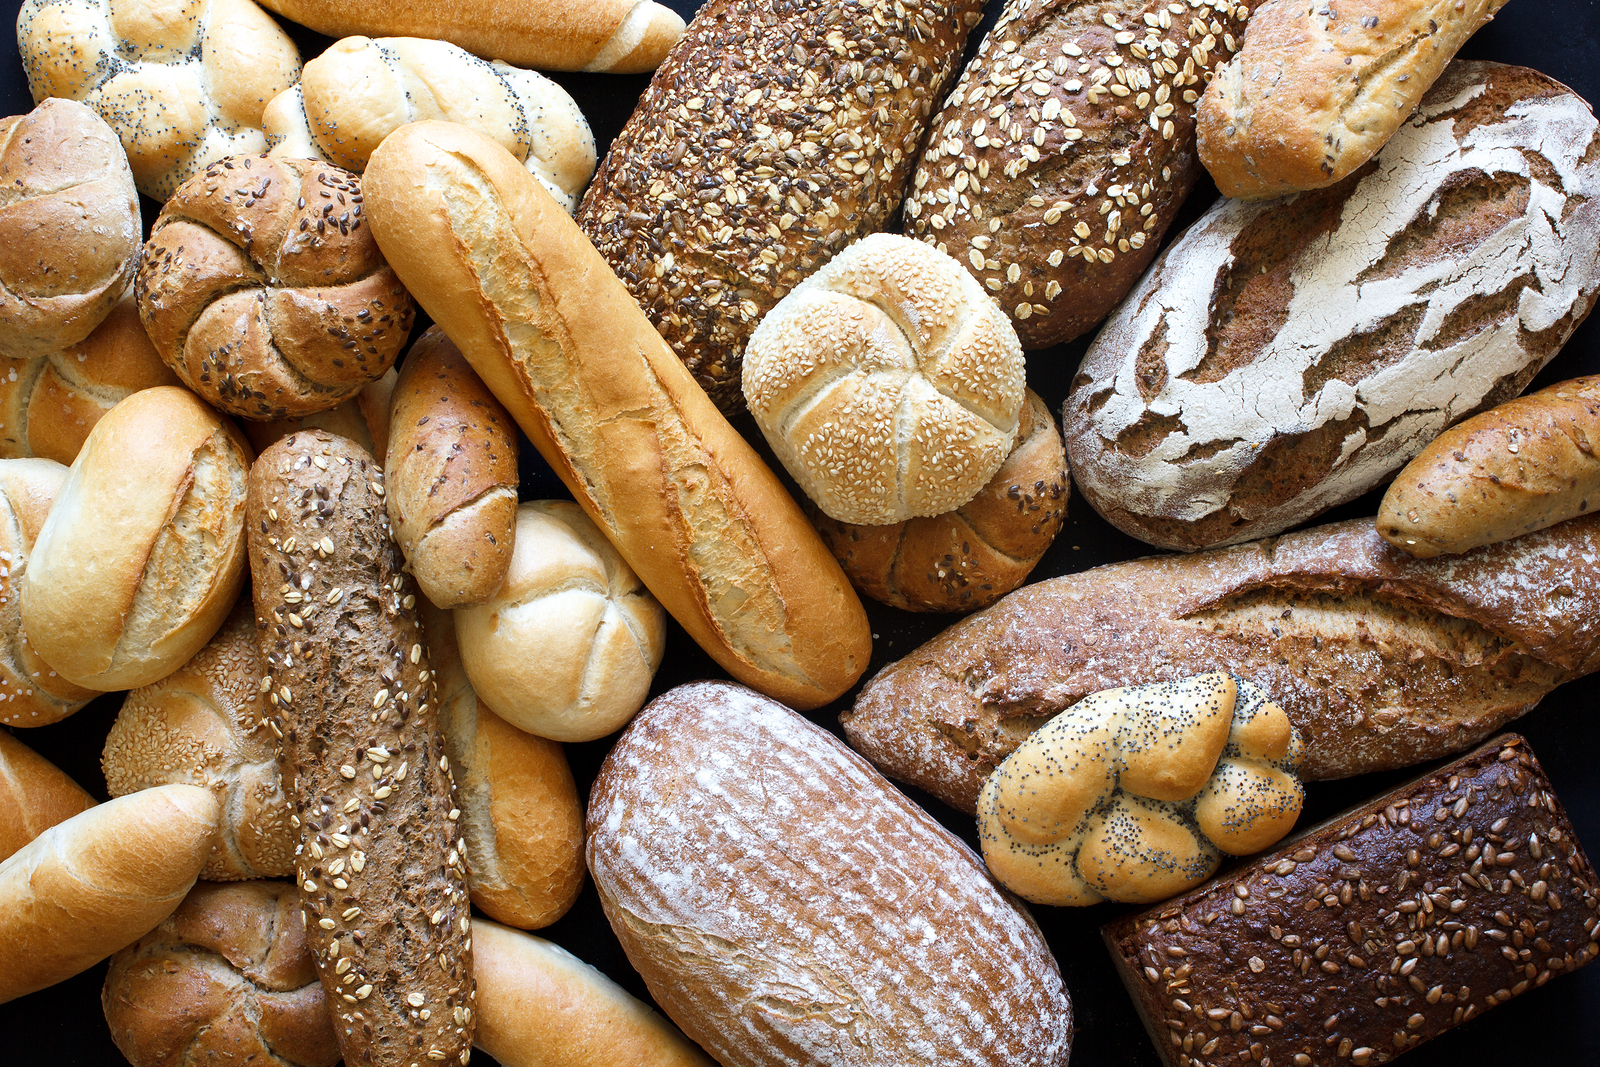 Medford property owners love fresh bread.